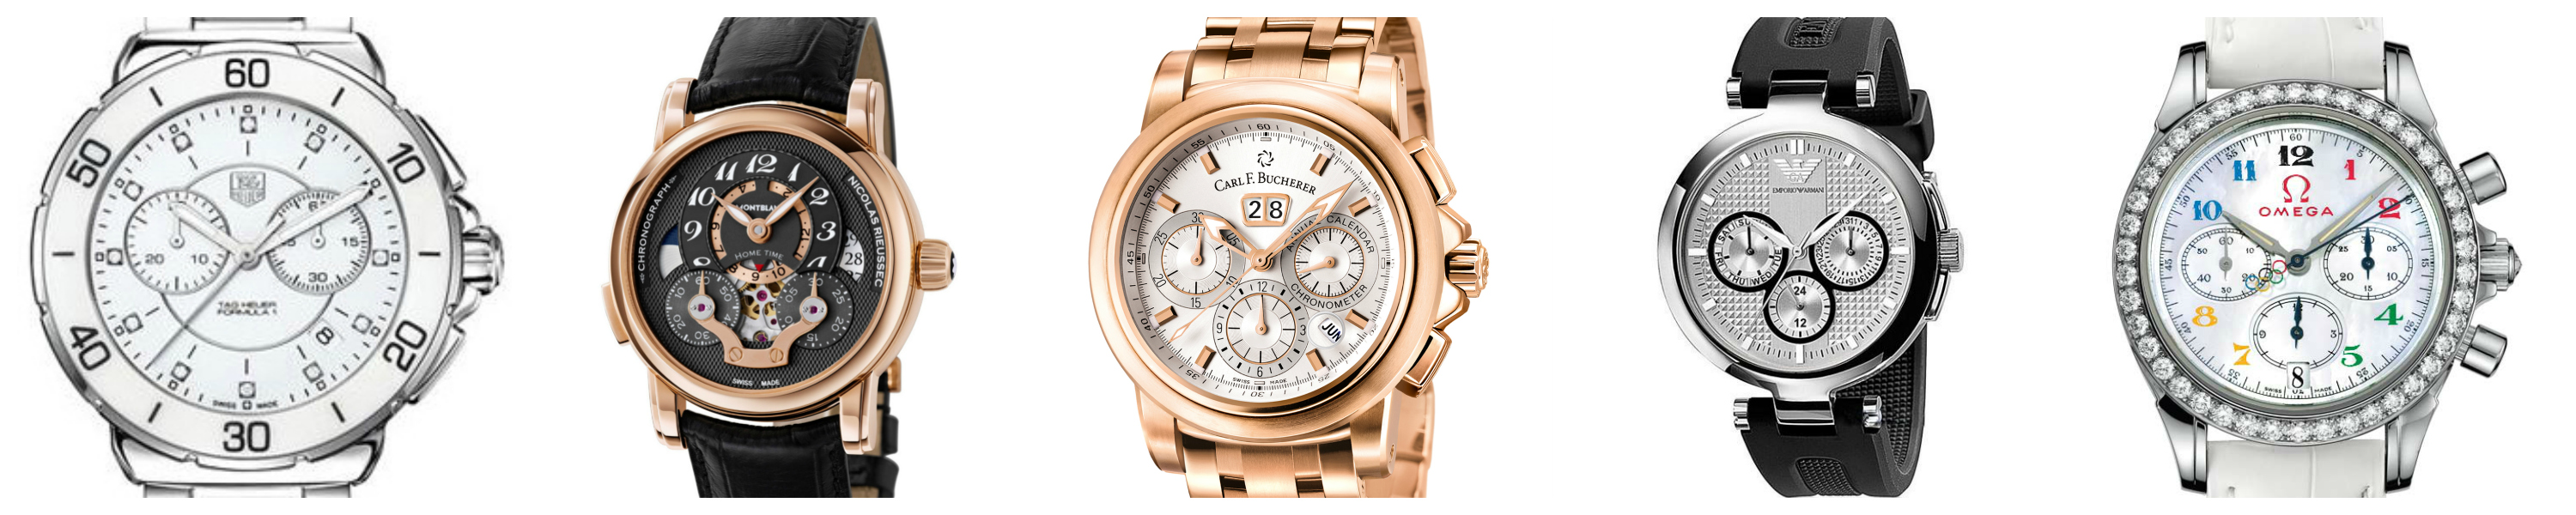 Luxury Watch Trends For 2015